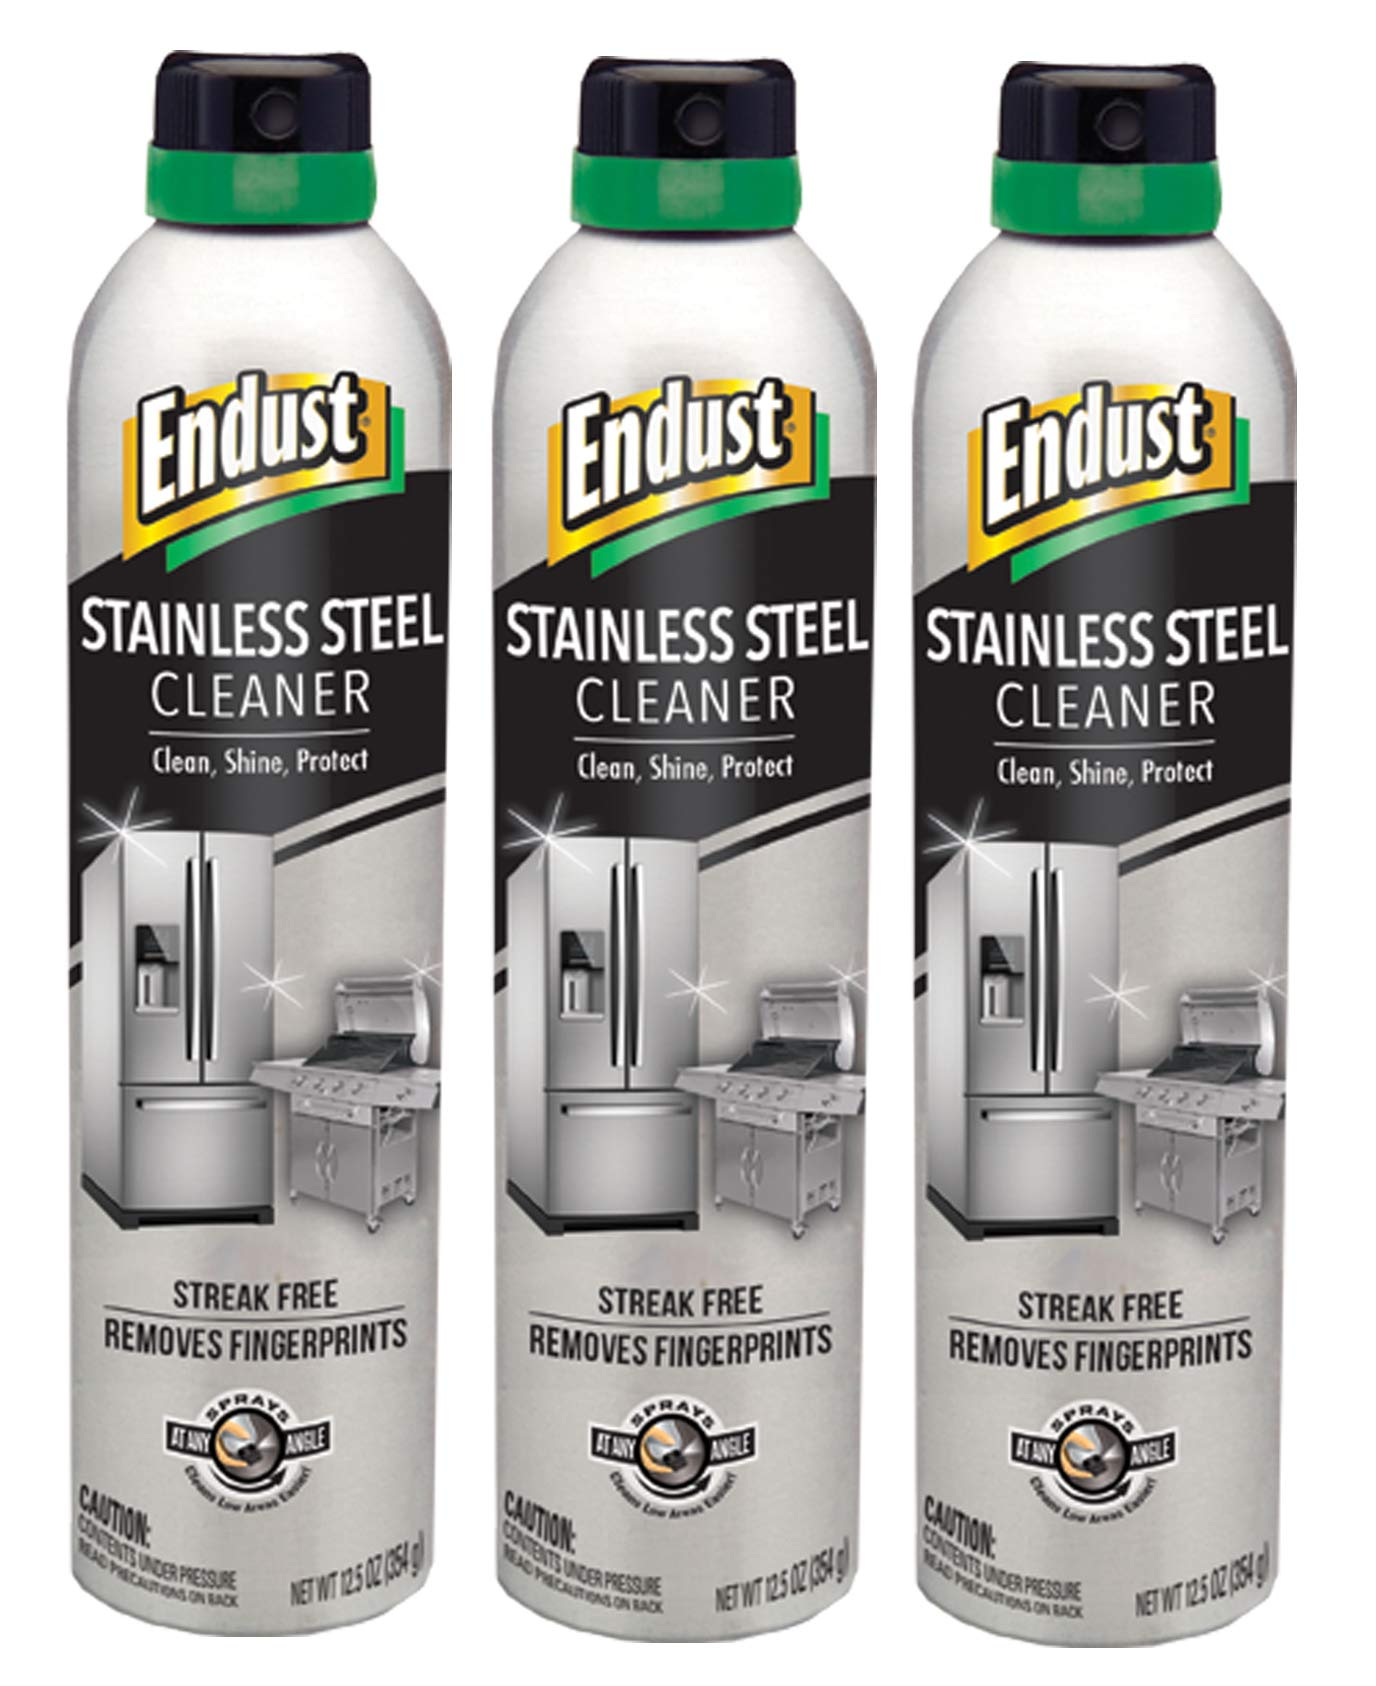 Endust Endust Stainless Steel Cleaner, 3 Count by Endust